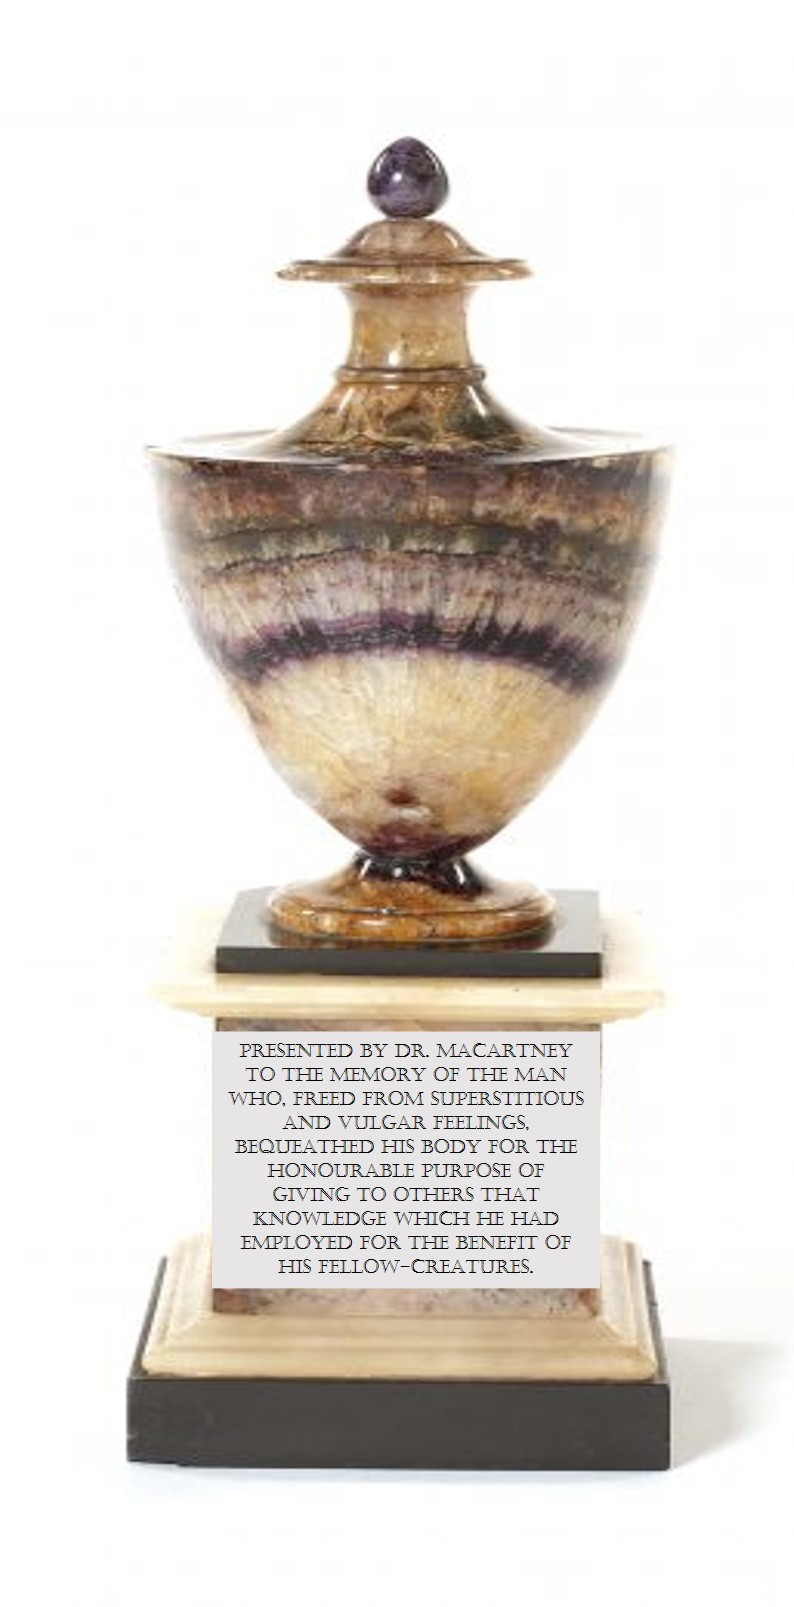 Recreation of vase with inscription to Dr Macartney